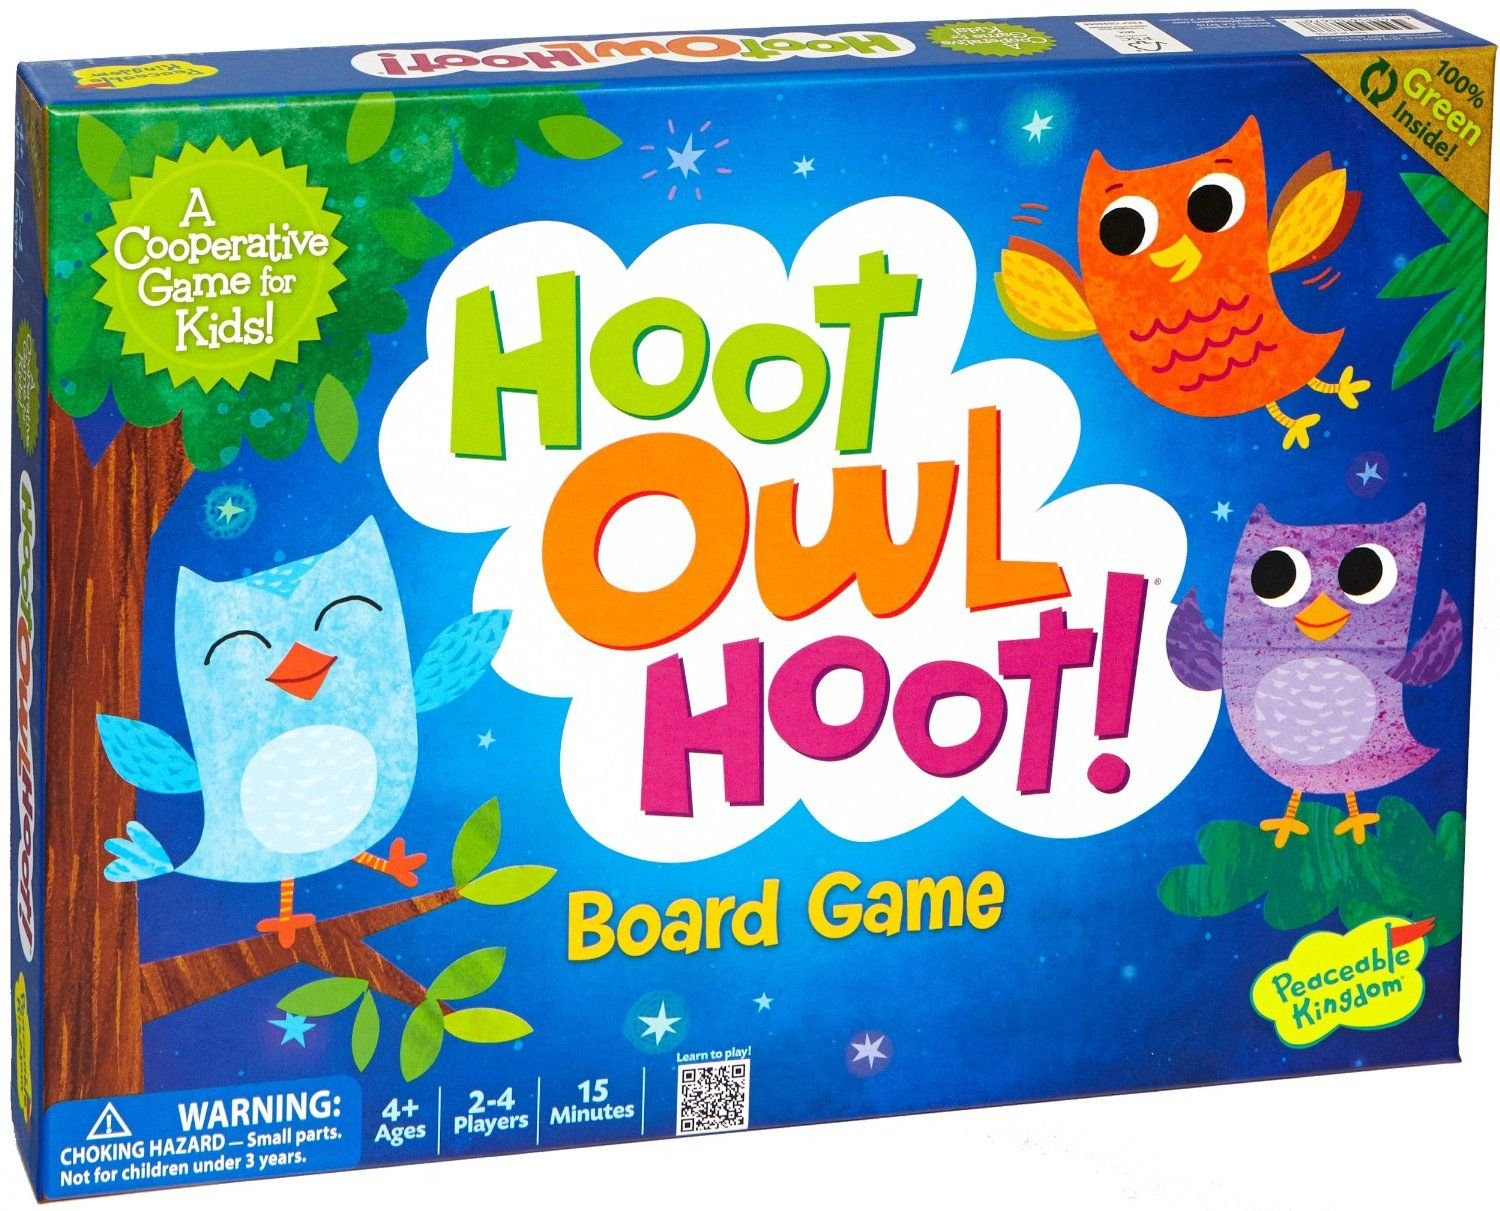 Peaceable Kingdom / Hoot Owl Hoot! Award Winning Cooperative Board Game product image